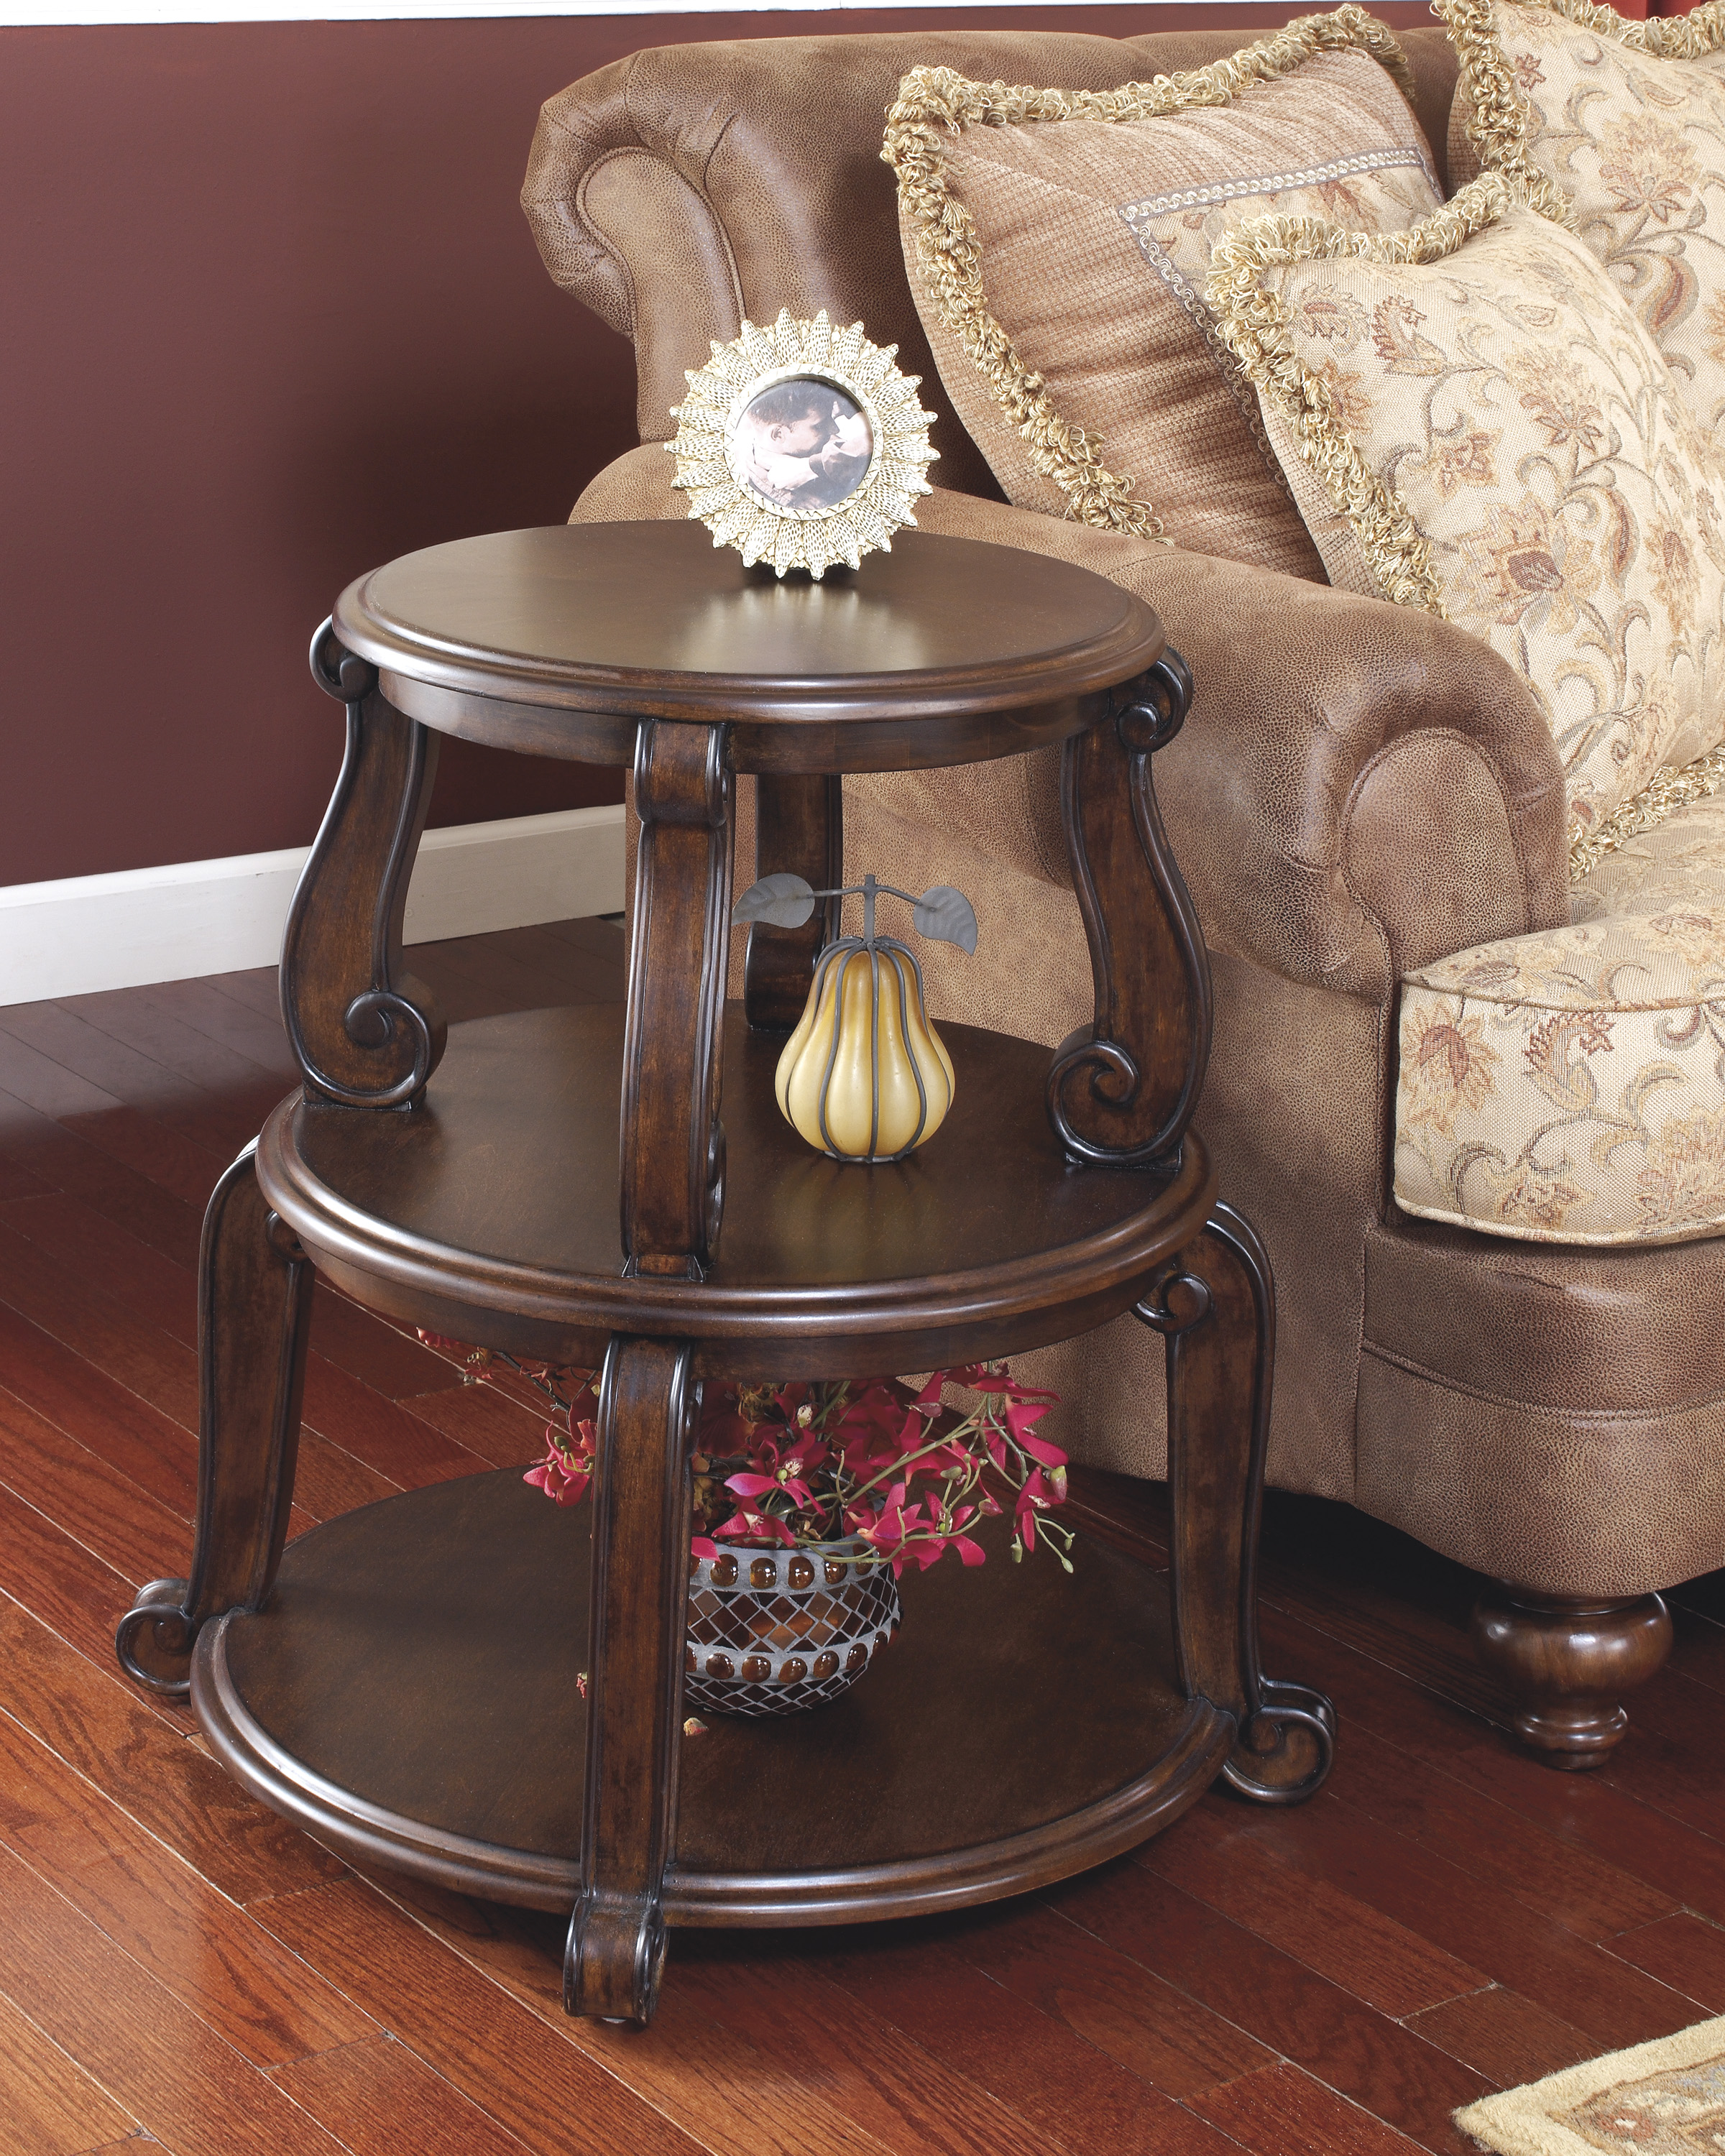 ashley brookfield round end table charma english acme espresso inch patio kmart indoor outdoor rugs best coffee tables log style kitchen magnolia farms decor wood nightstand